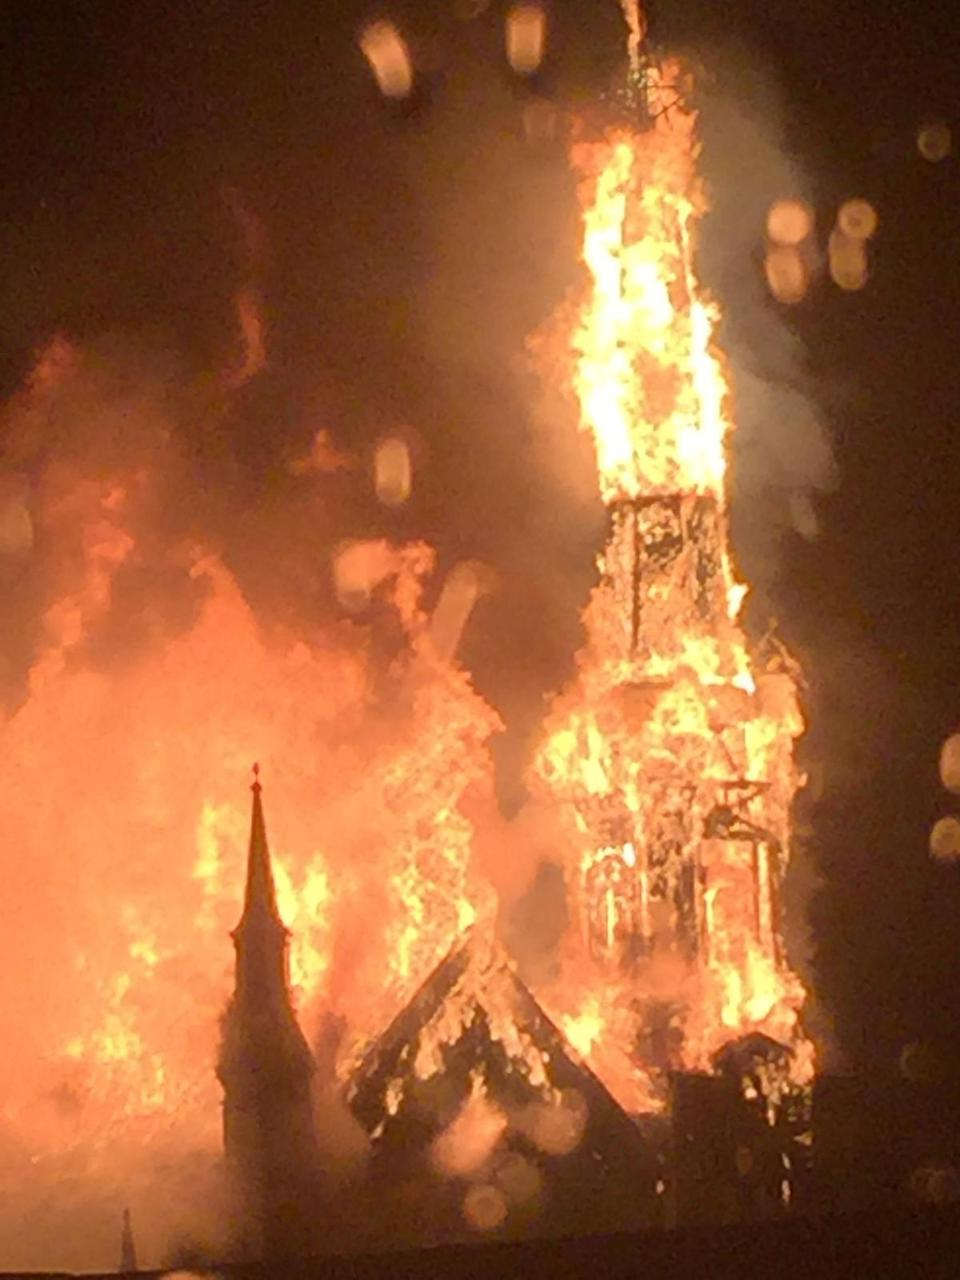 A Witness Took This P O When The Spire Was Fully Involved